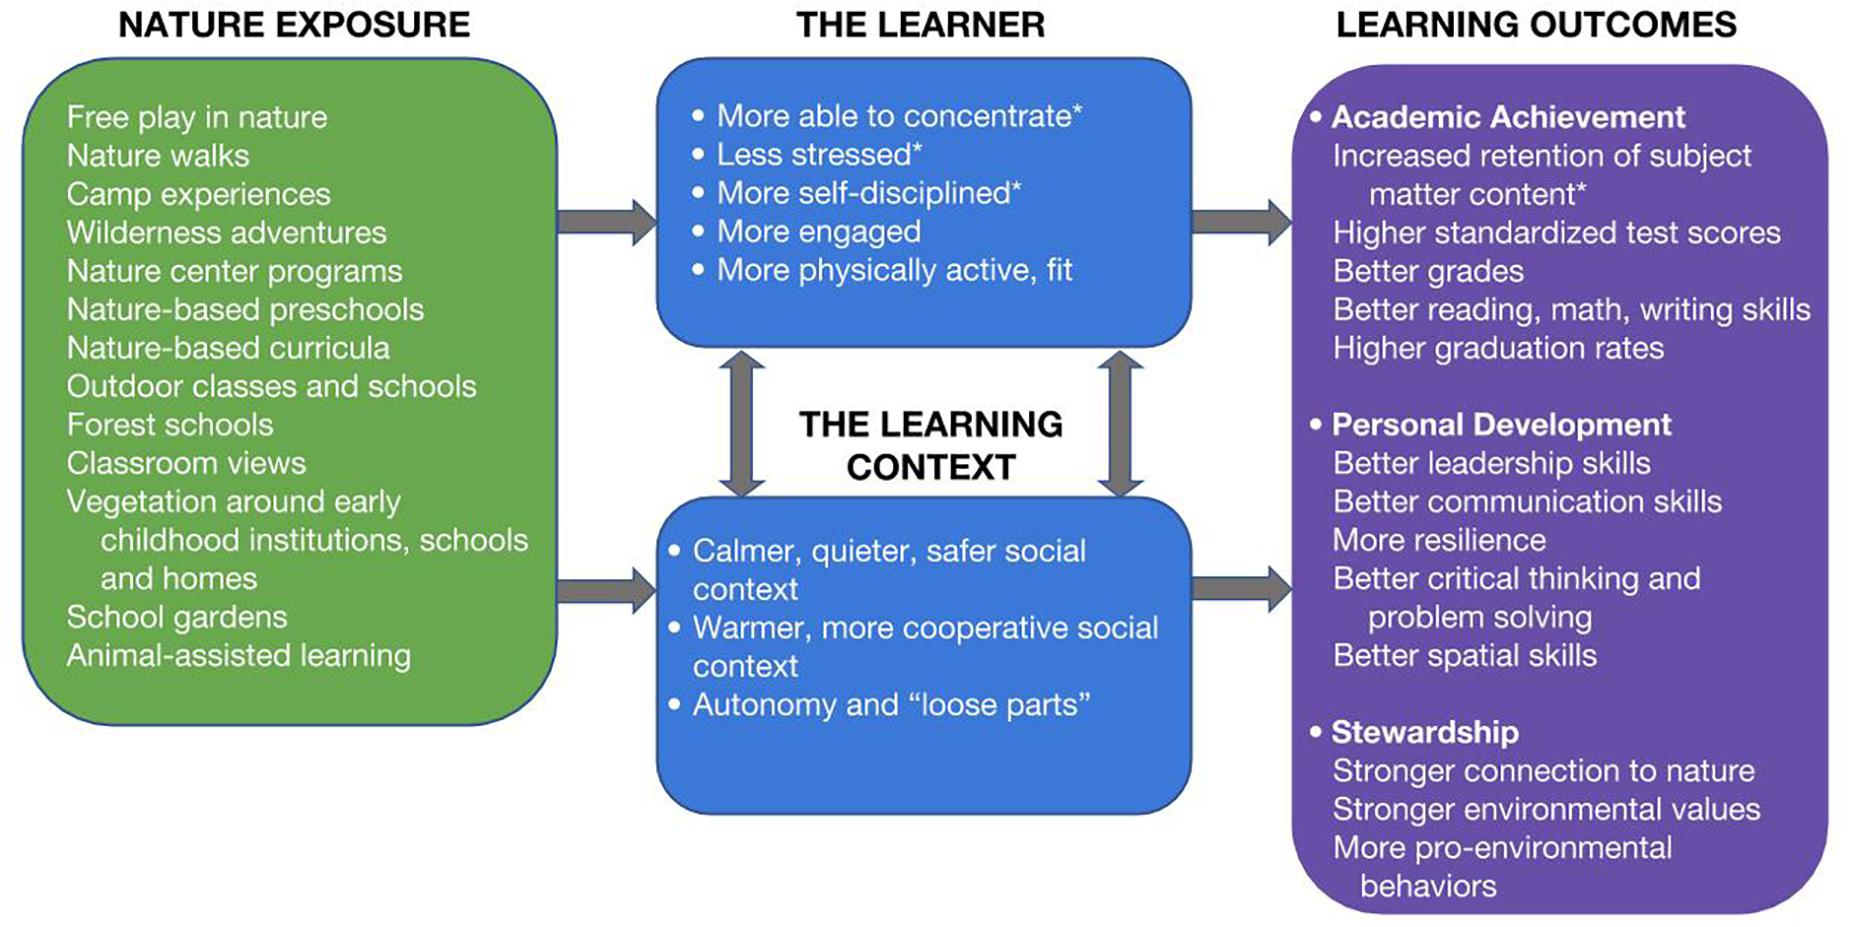 Do Experiences With Nature Promote Learning